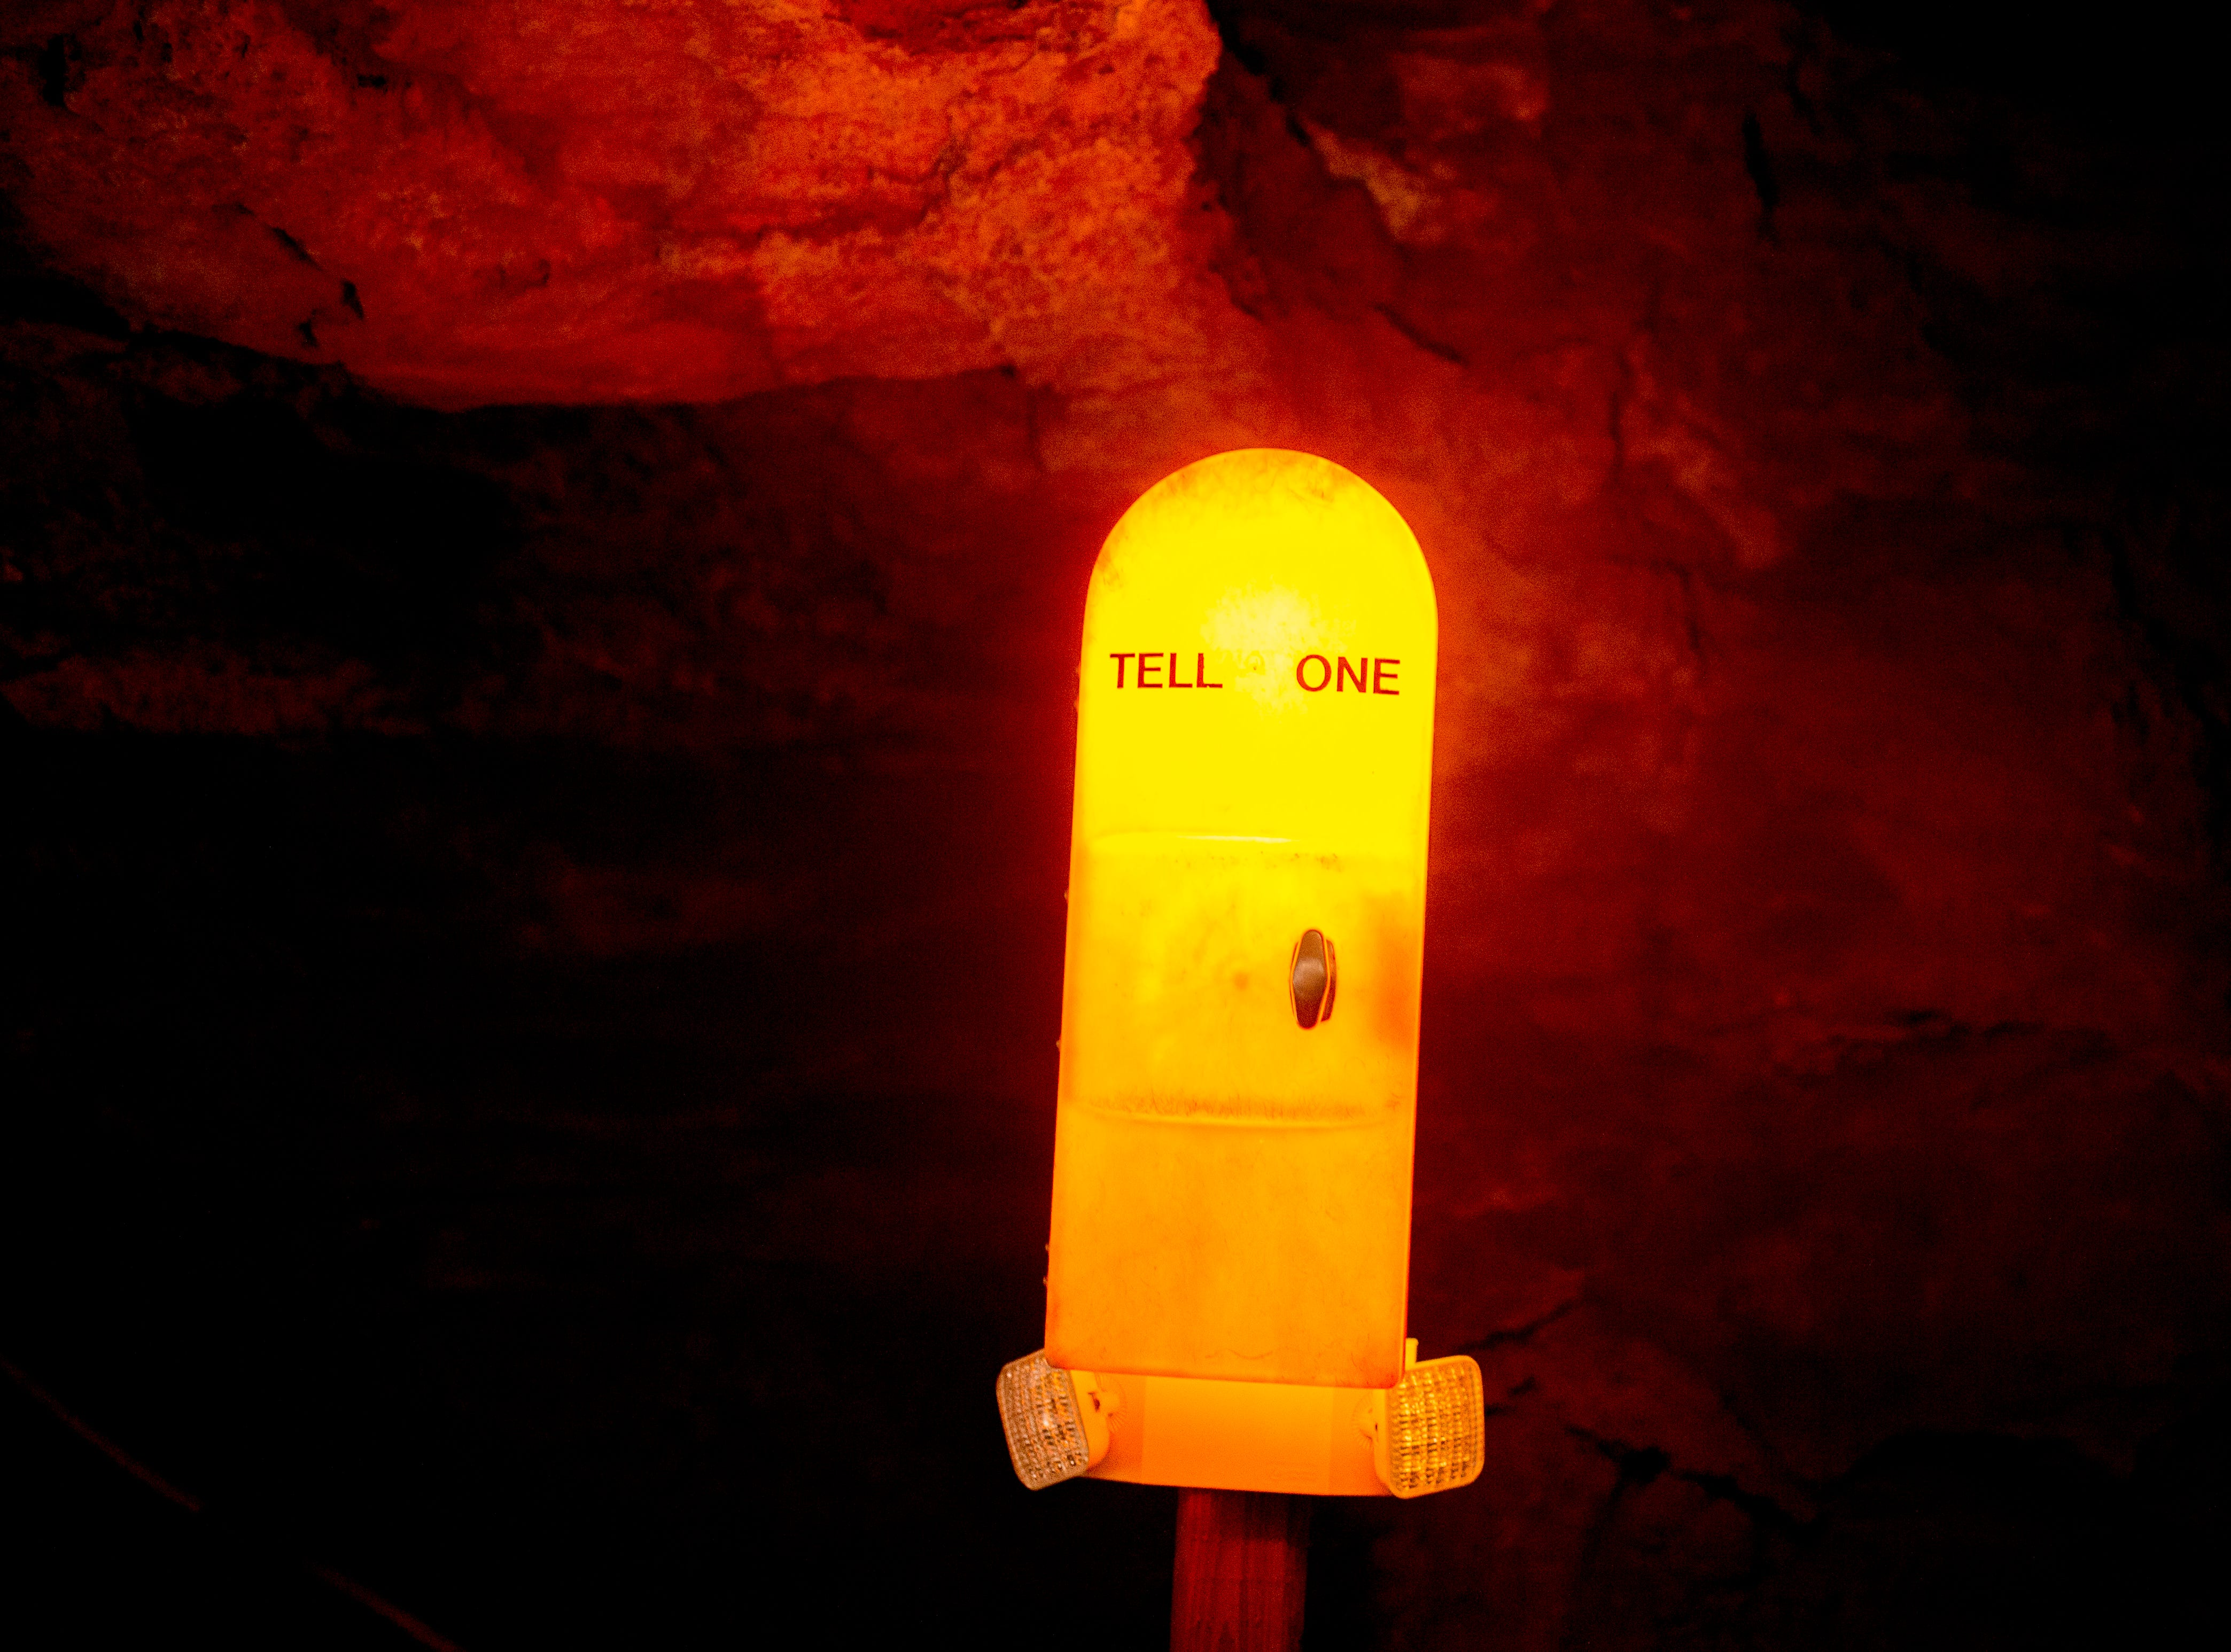 A telephone to the surface at the Lost Sea Adventure underground cave attraction outside of Sweetwater, Tennessee on Wednesday, August 15, 2018. The cave system dates back some 20,000 years and today features points of interests like an old moonshine still, rock formations, Confederate Army graffiti and the popular boat ride in a natural lake stocked with 200 rainbow trout.